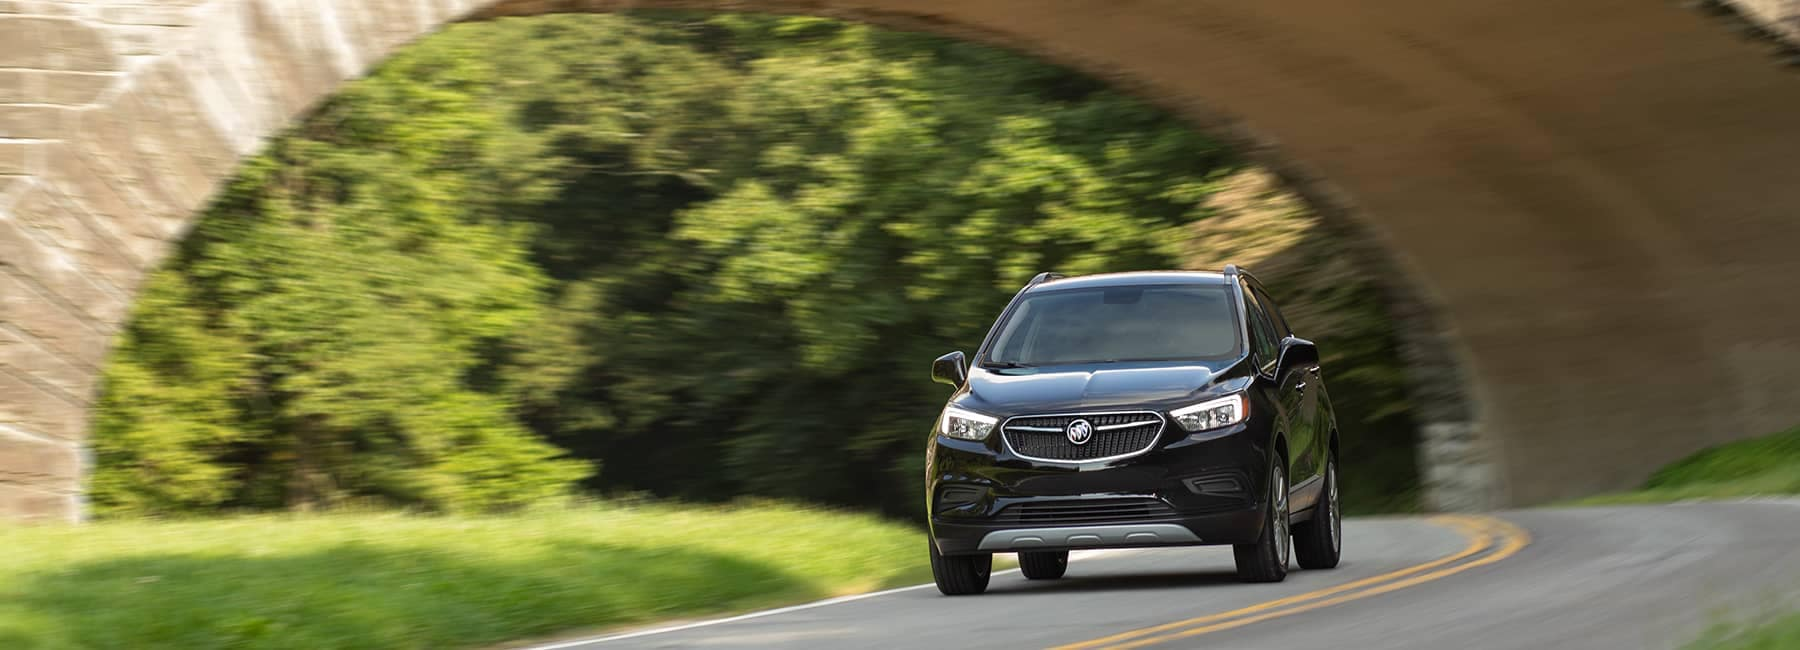 2020 Buick Encore Under a Bridge